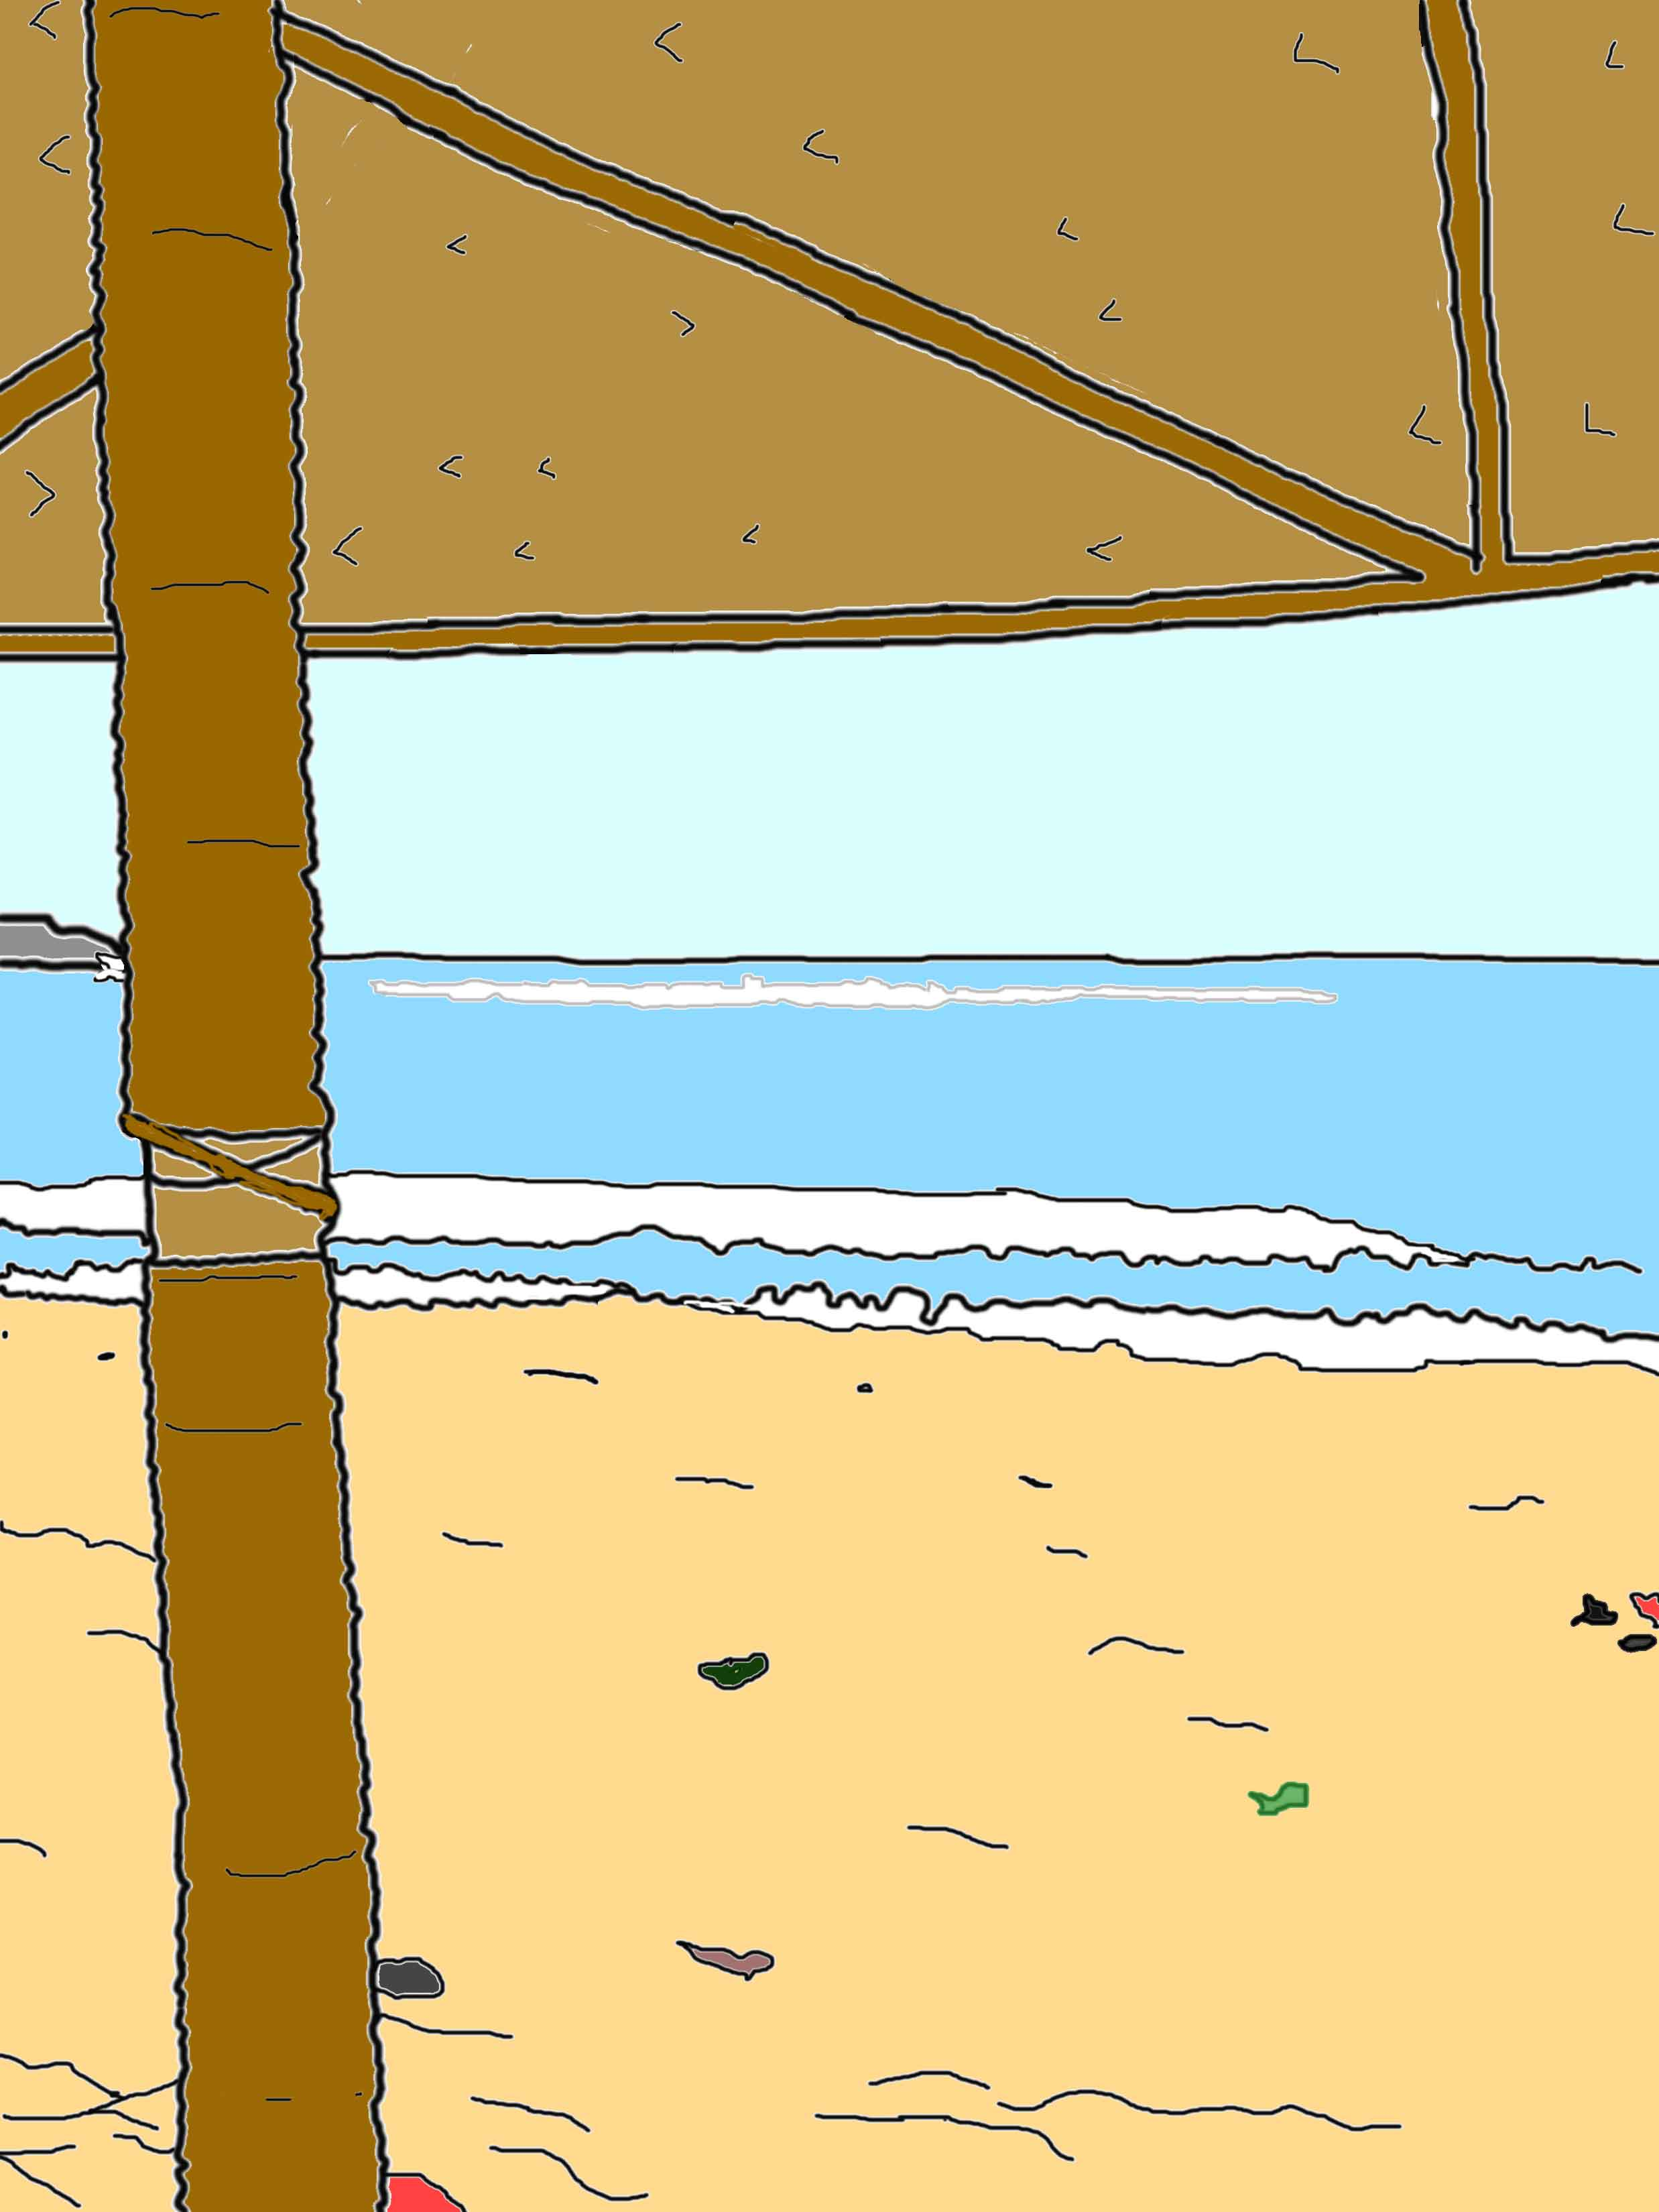 Beach umbrella drawing colored.